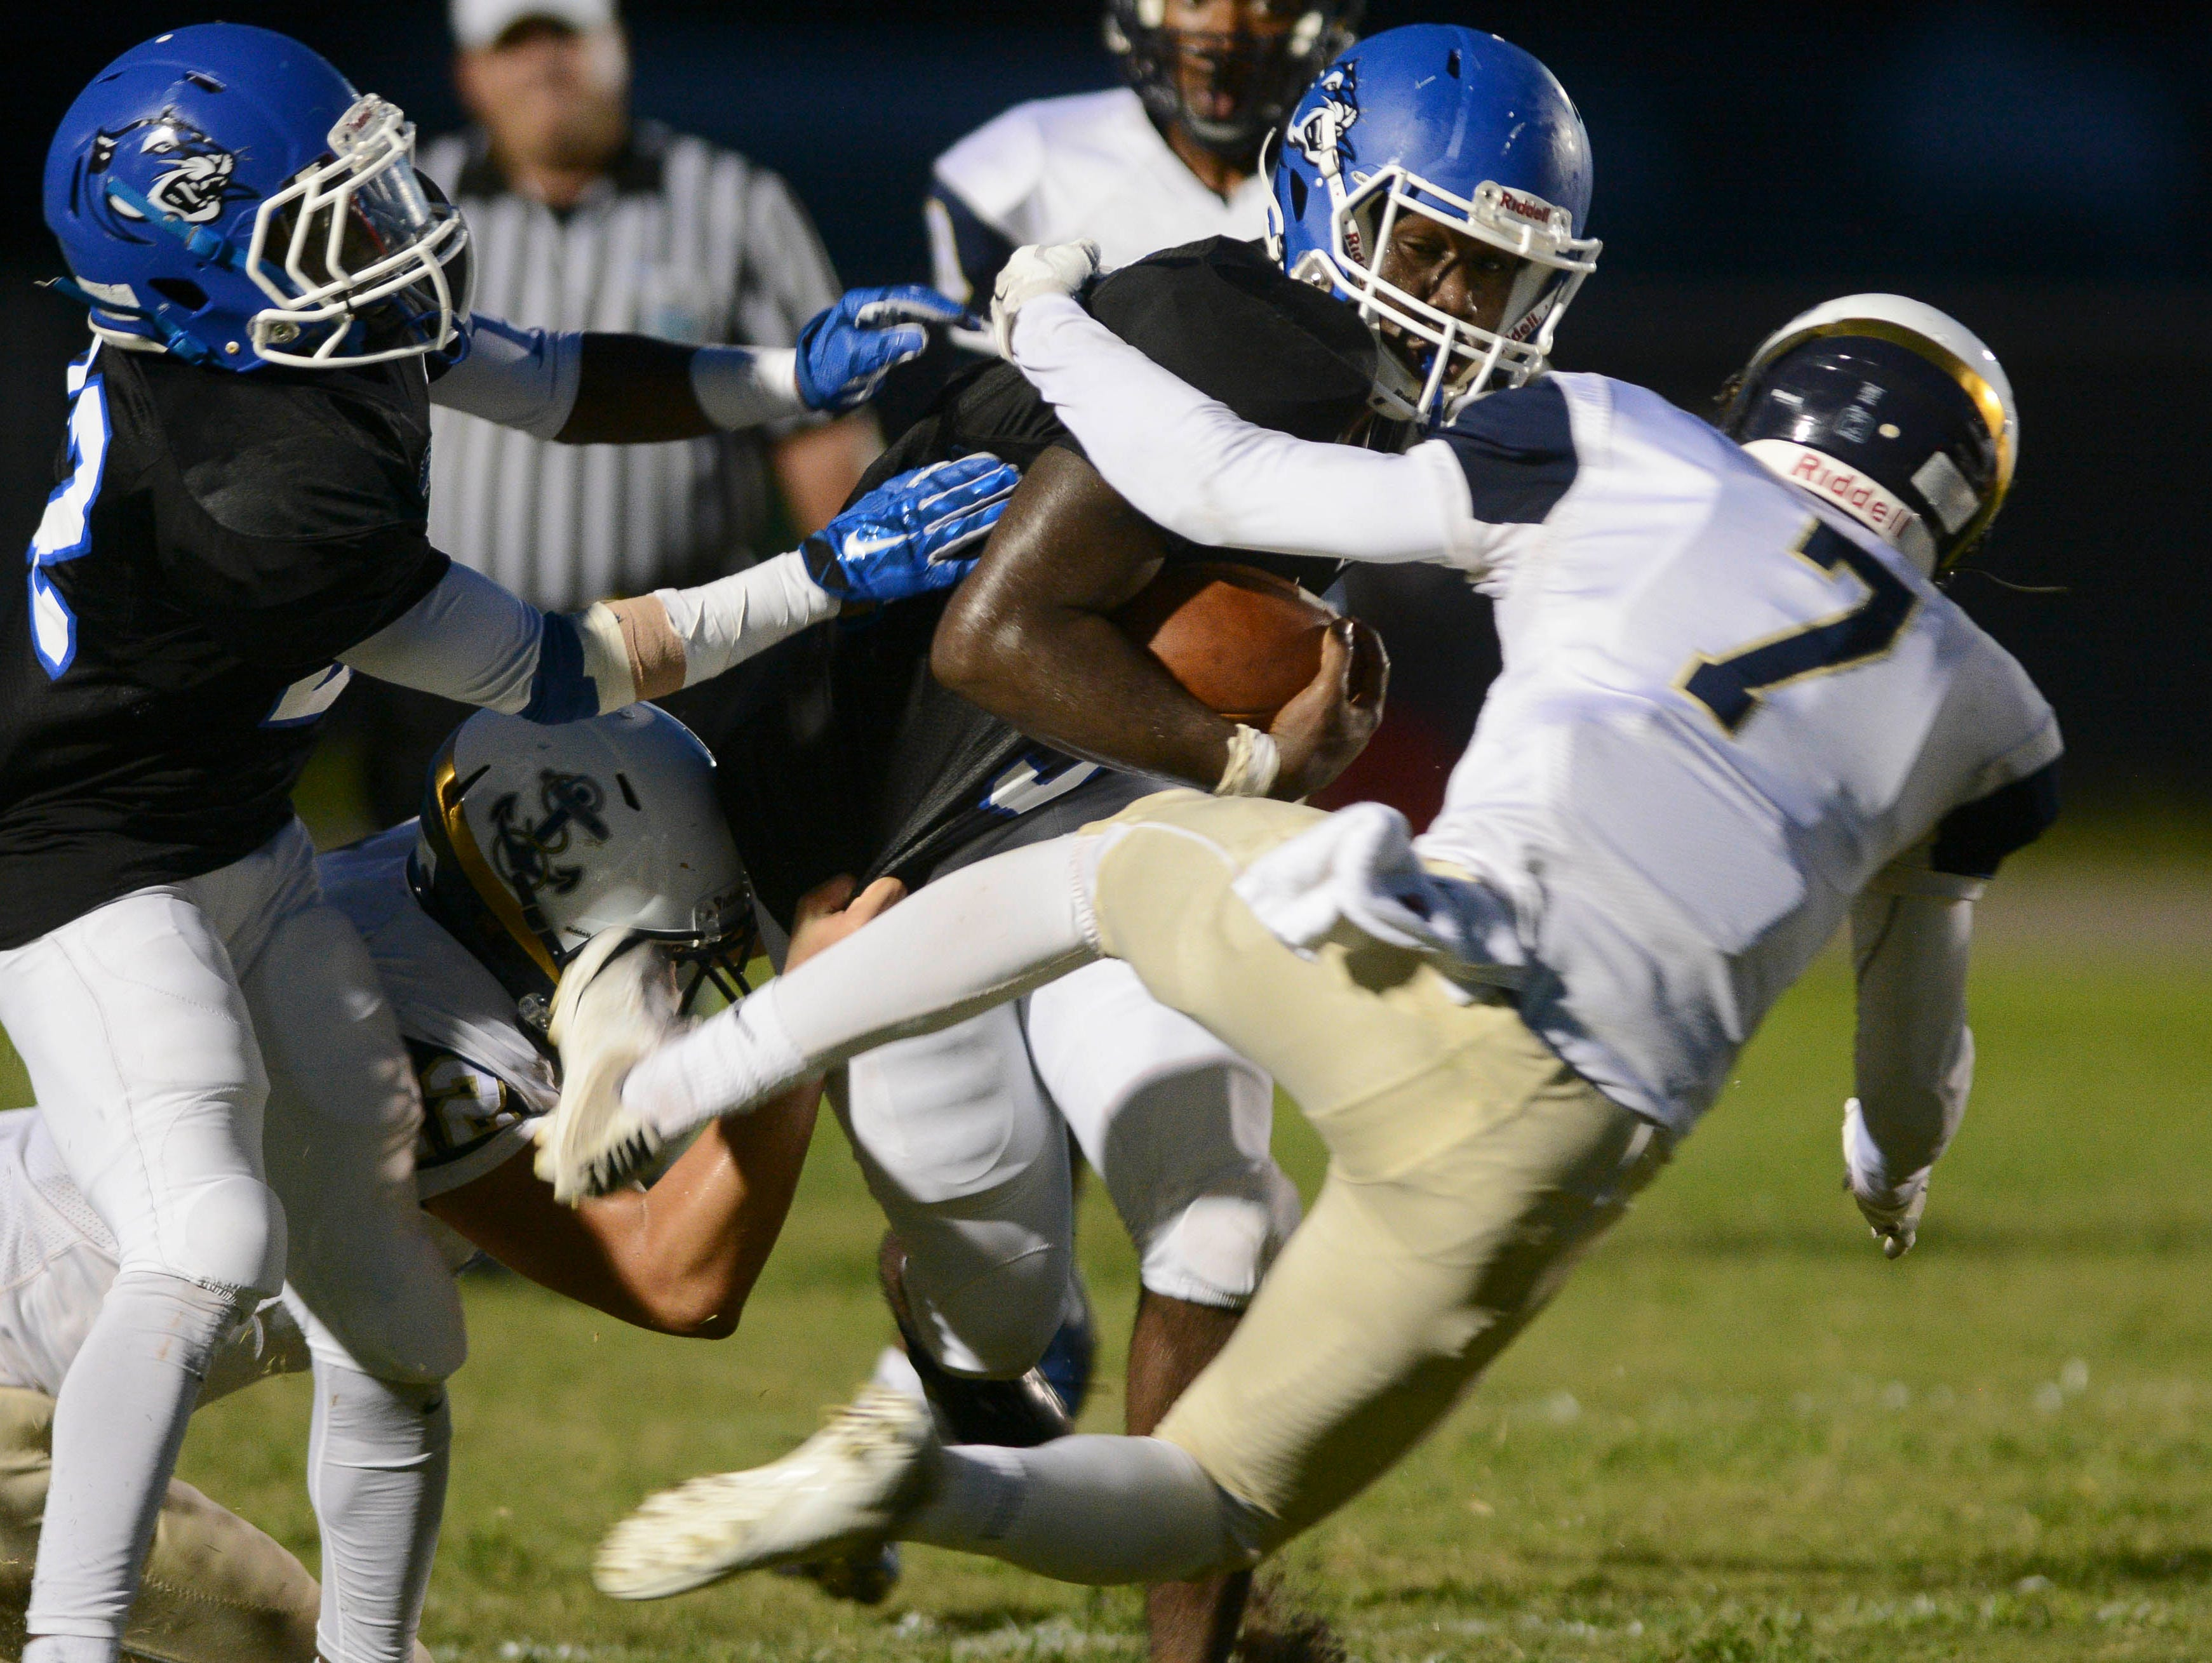 Negail Wright of Heritage is tackled by Josh Moo of Eau Gallie (7) during Friday's game in Palm Bay.